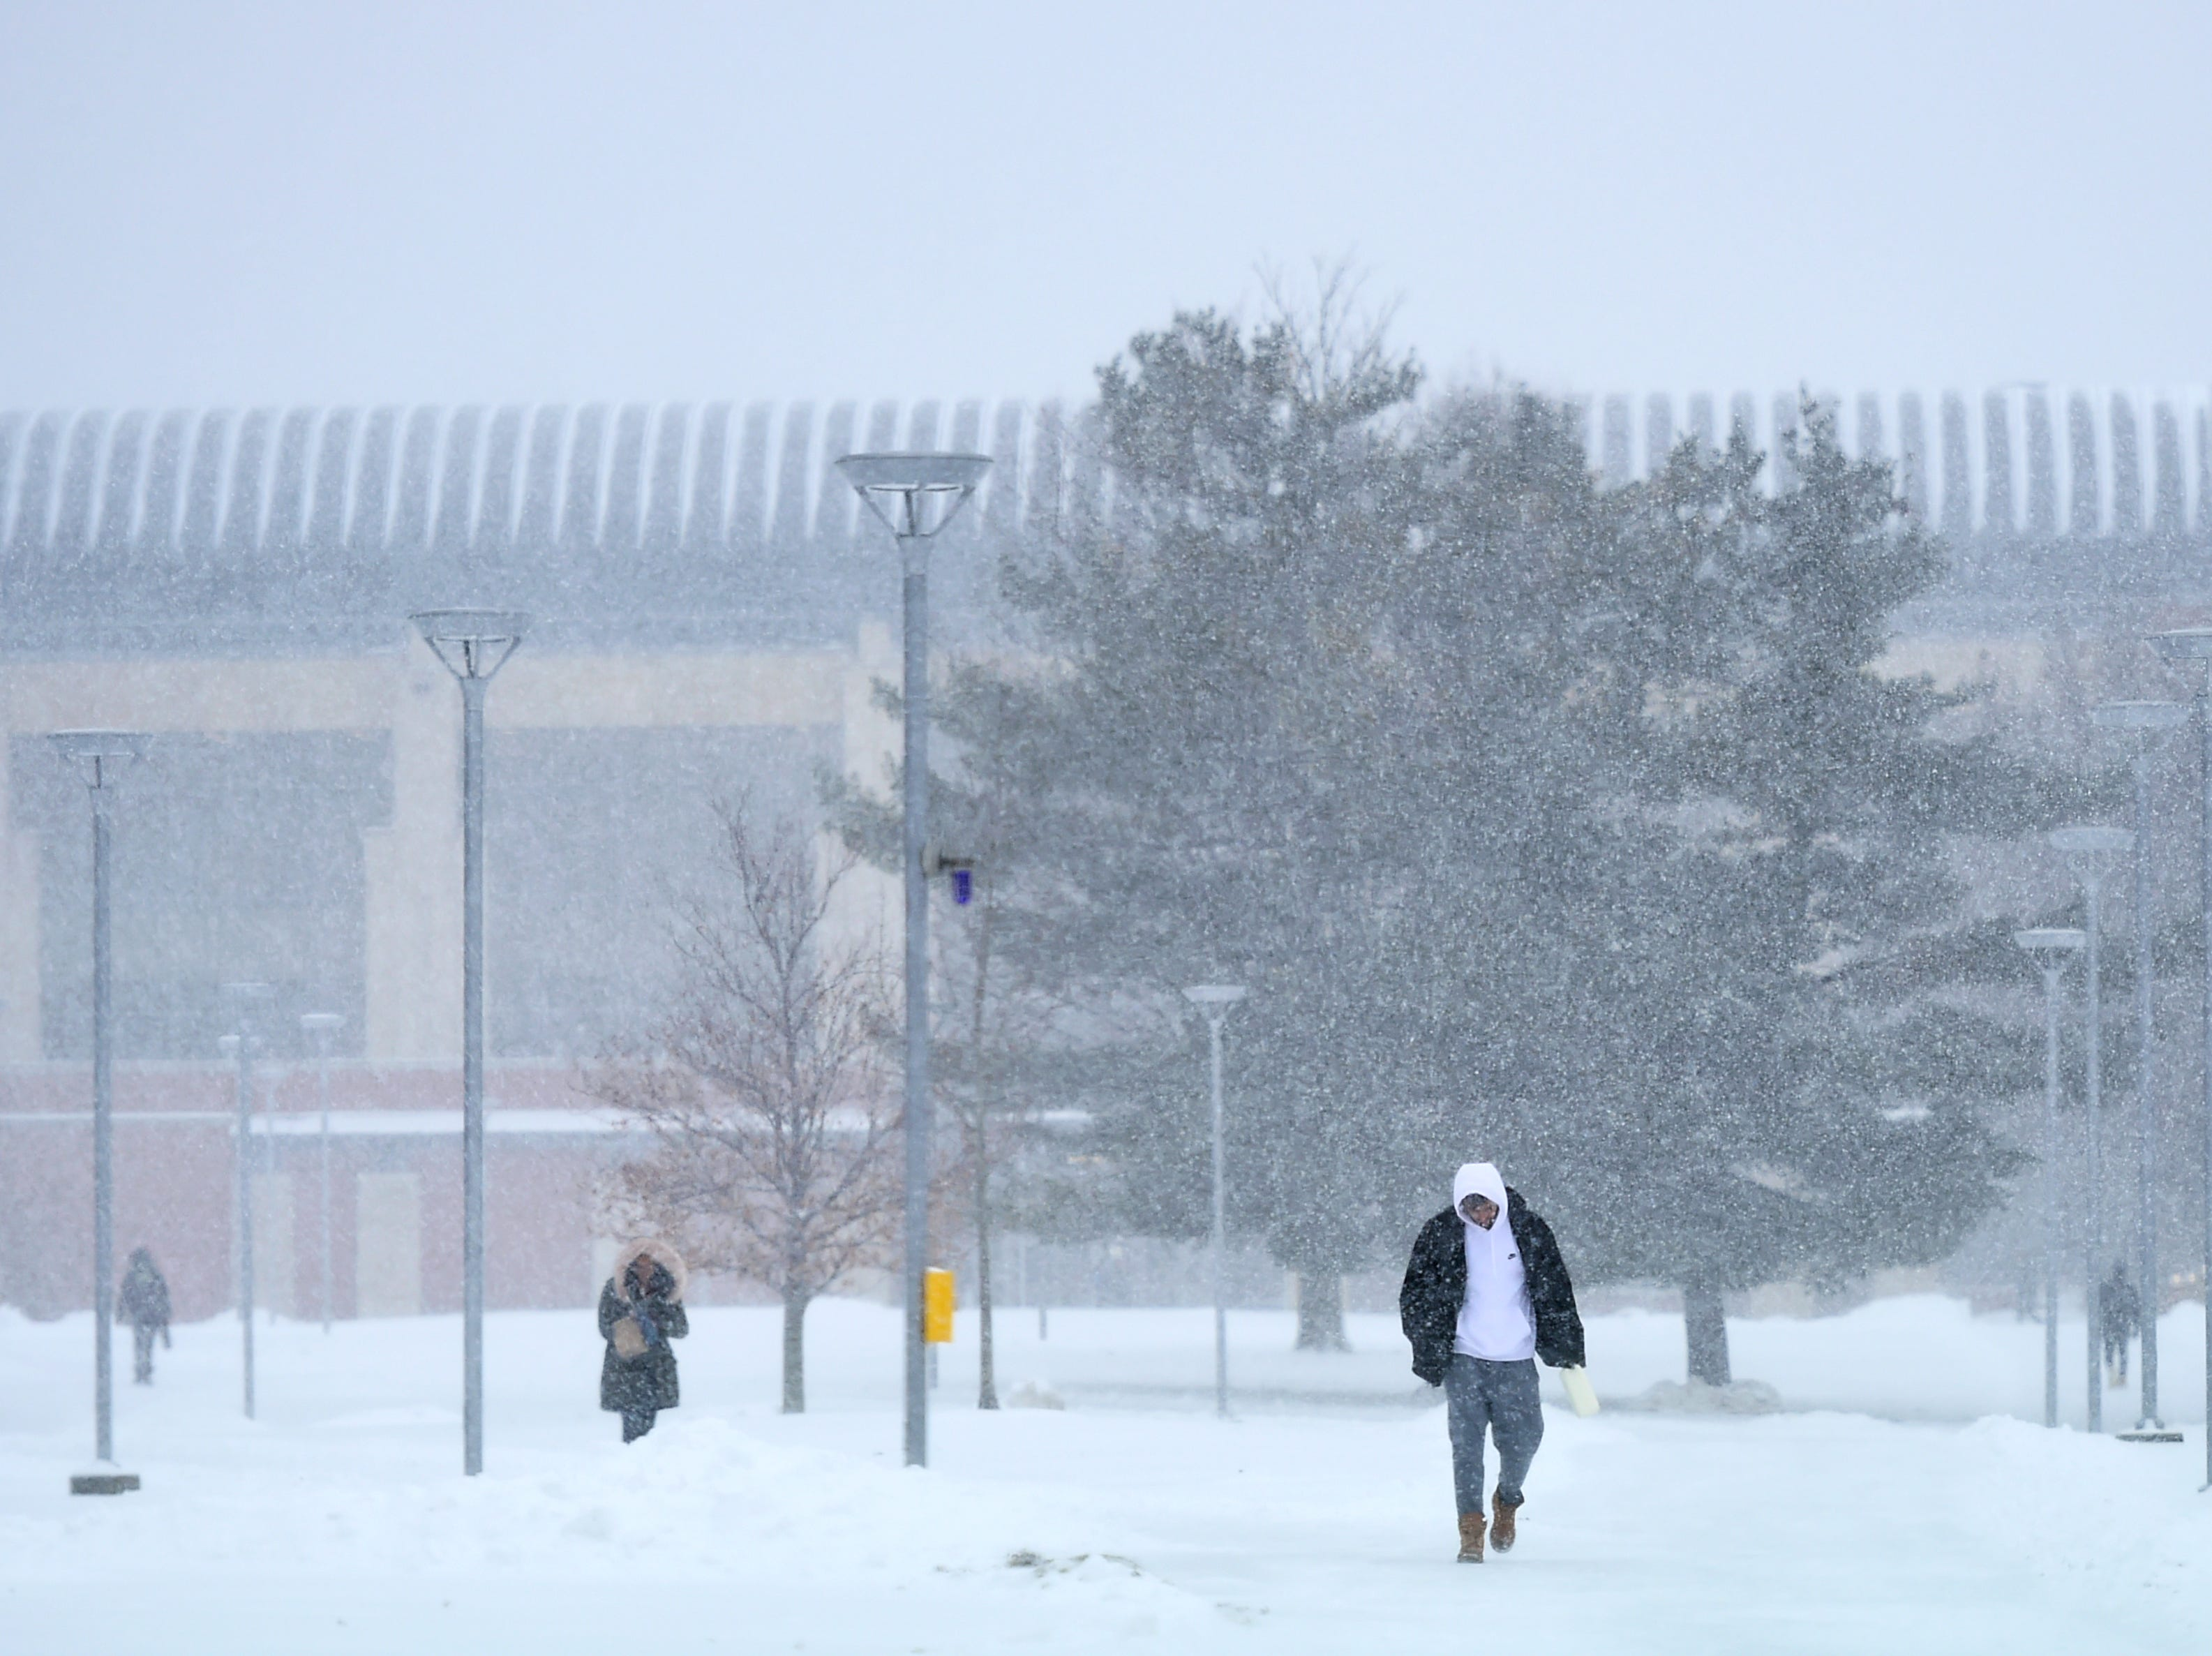 While many area schools cancelled classes on Tuesday, the Ithaca College campus remained open as a winter storm brought snow, ice and high winds to Ithaca and the surrounding regions on Tuesday, February 12, 2019.